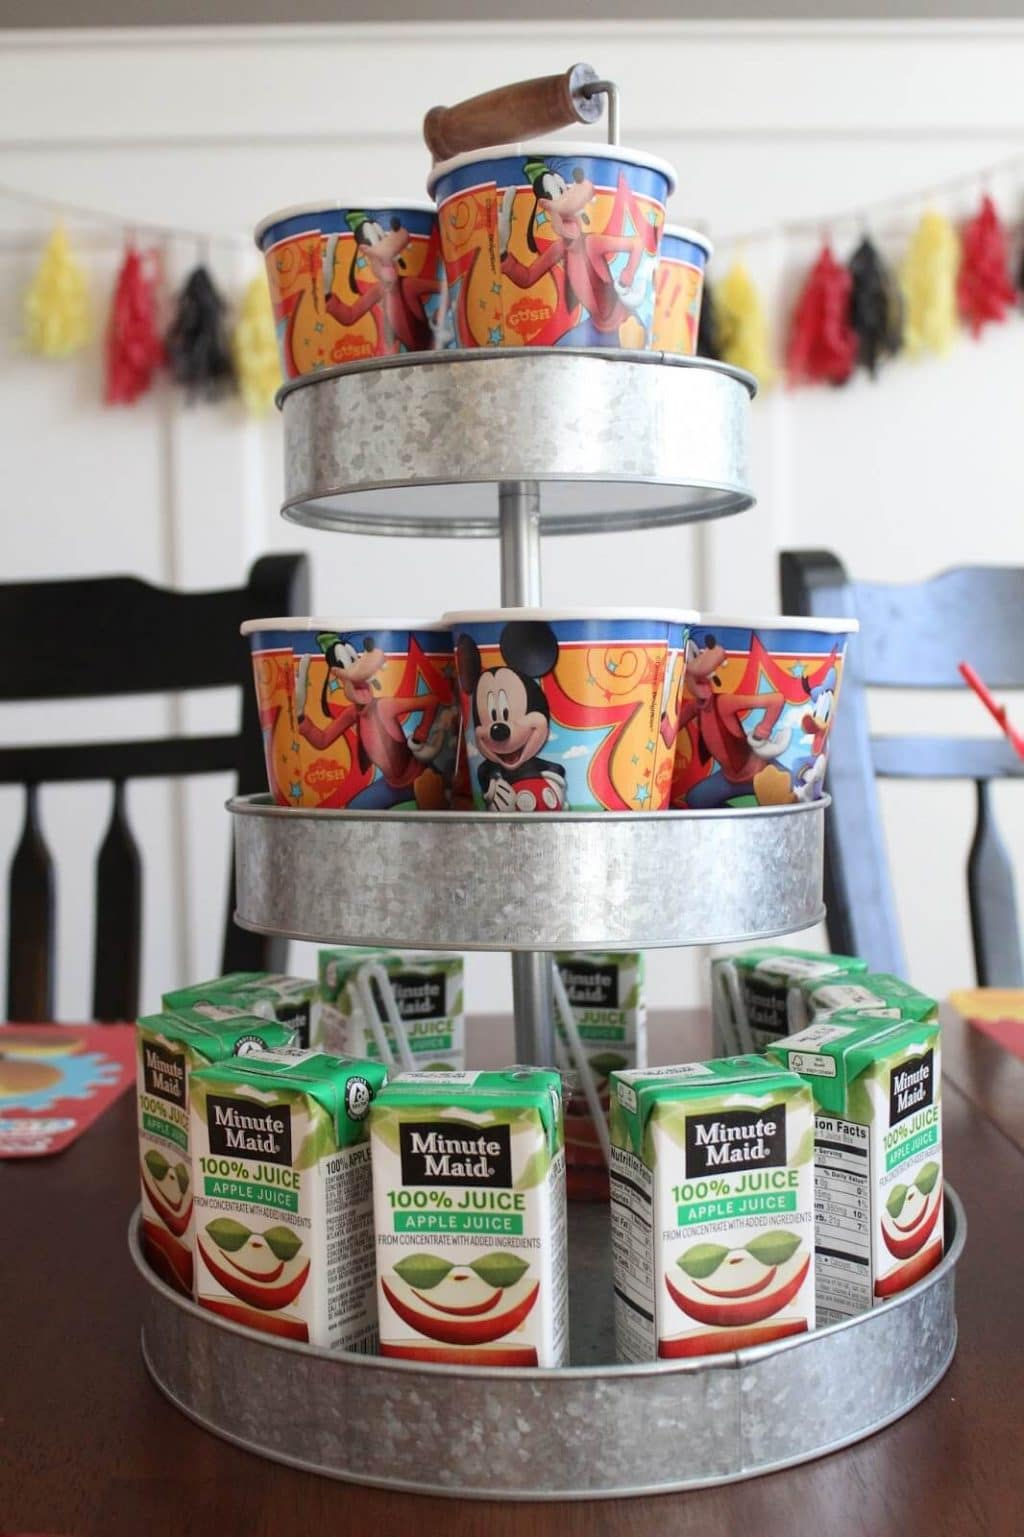 #DisneyKids Mickey Mouse Clubhouse party ideas, tips, food